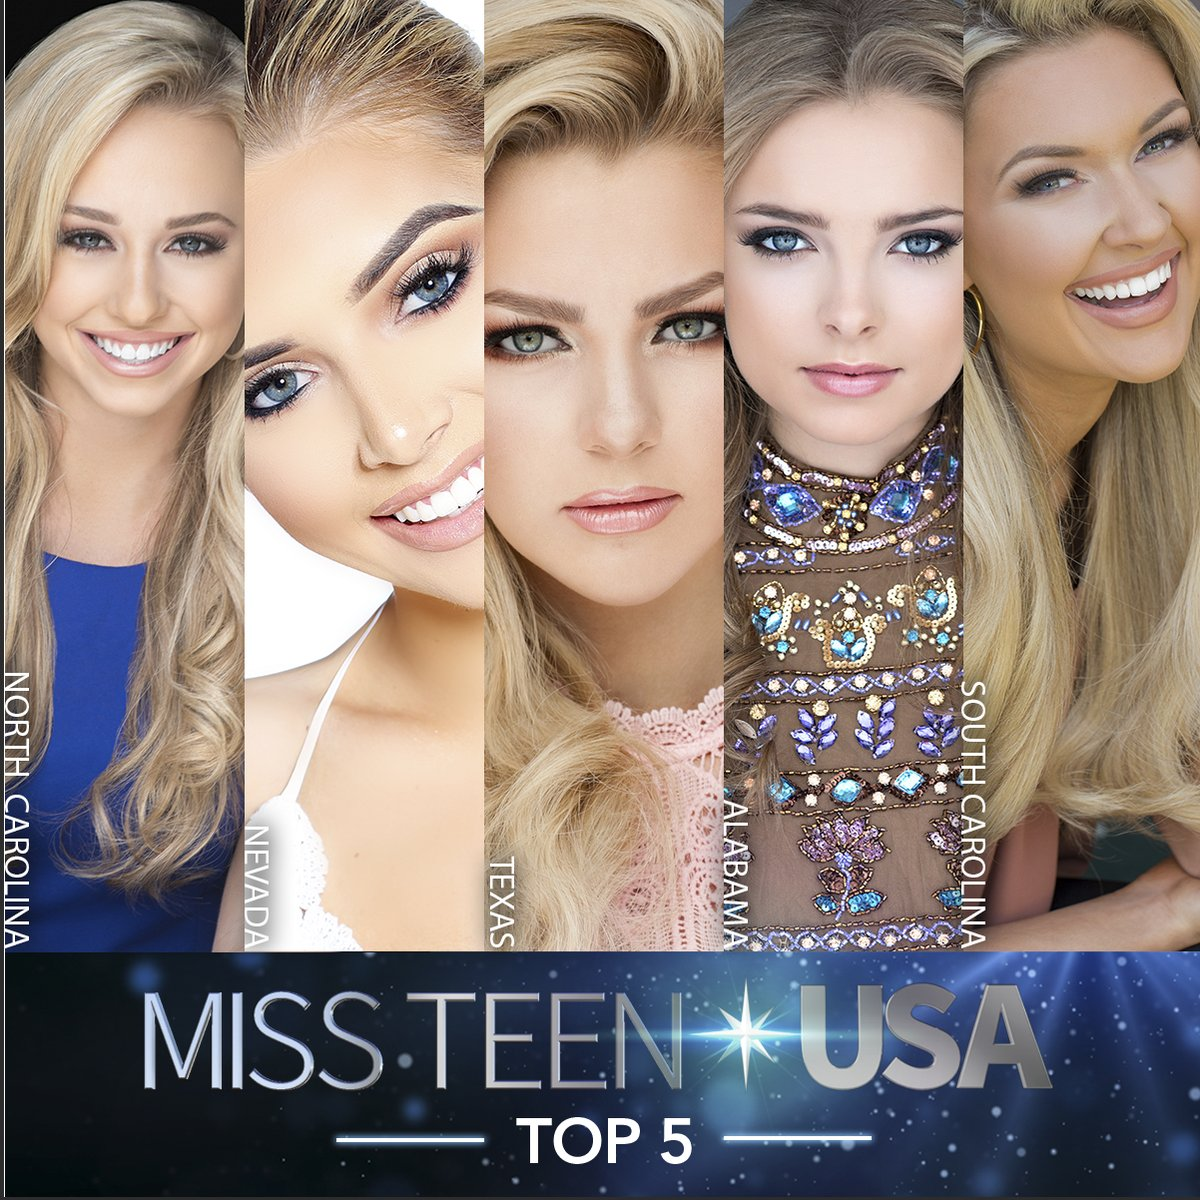 beauty pageants ethics alarms beauty contest ethics diversity ethics bizarro word ethics the miss teen america pageant